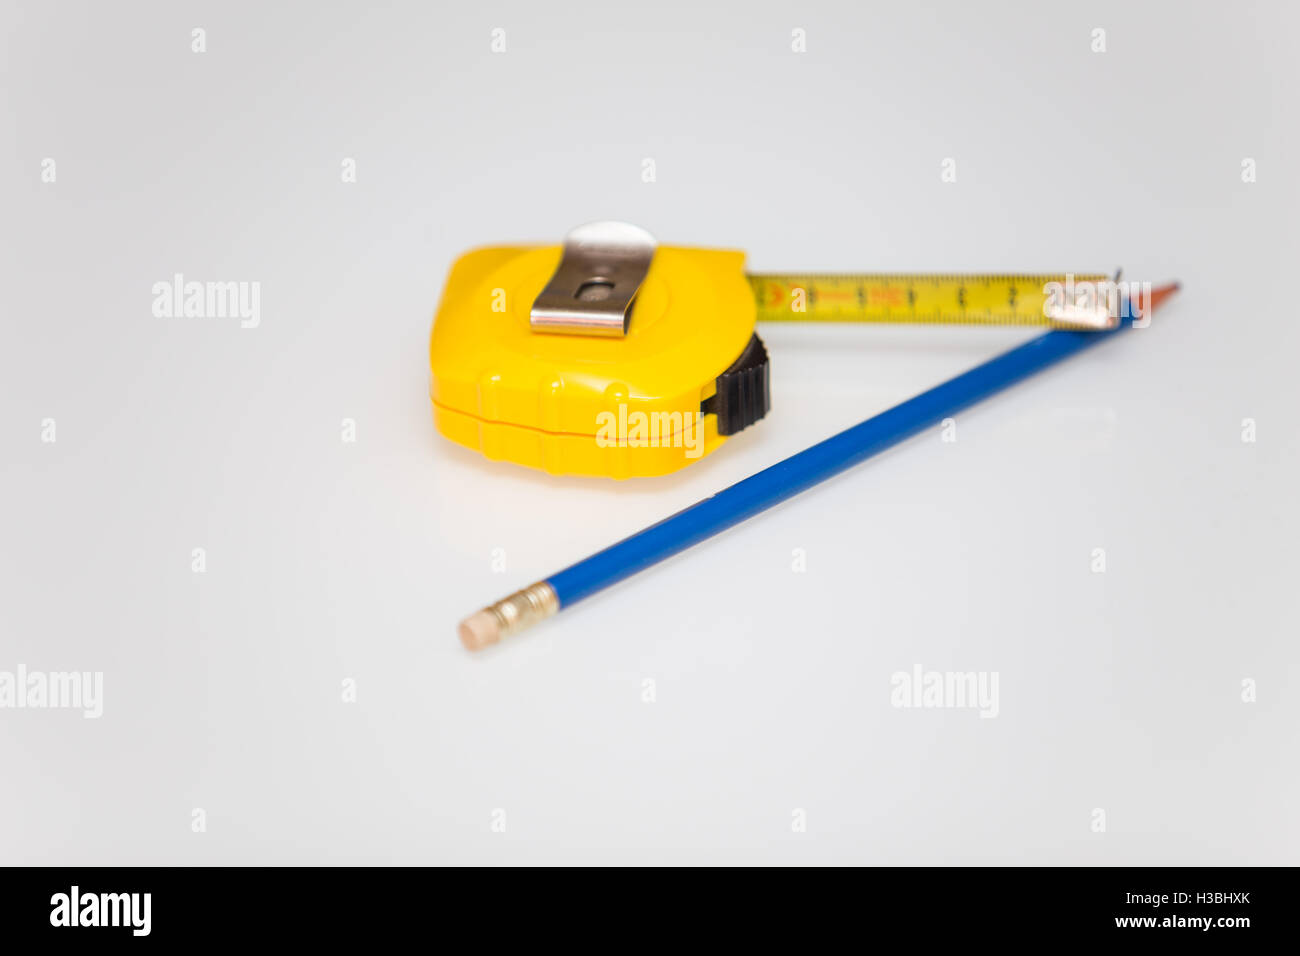 Meter stick and pencil / background - Stock Image